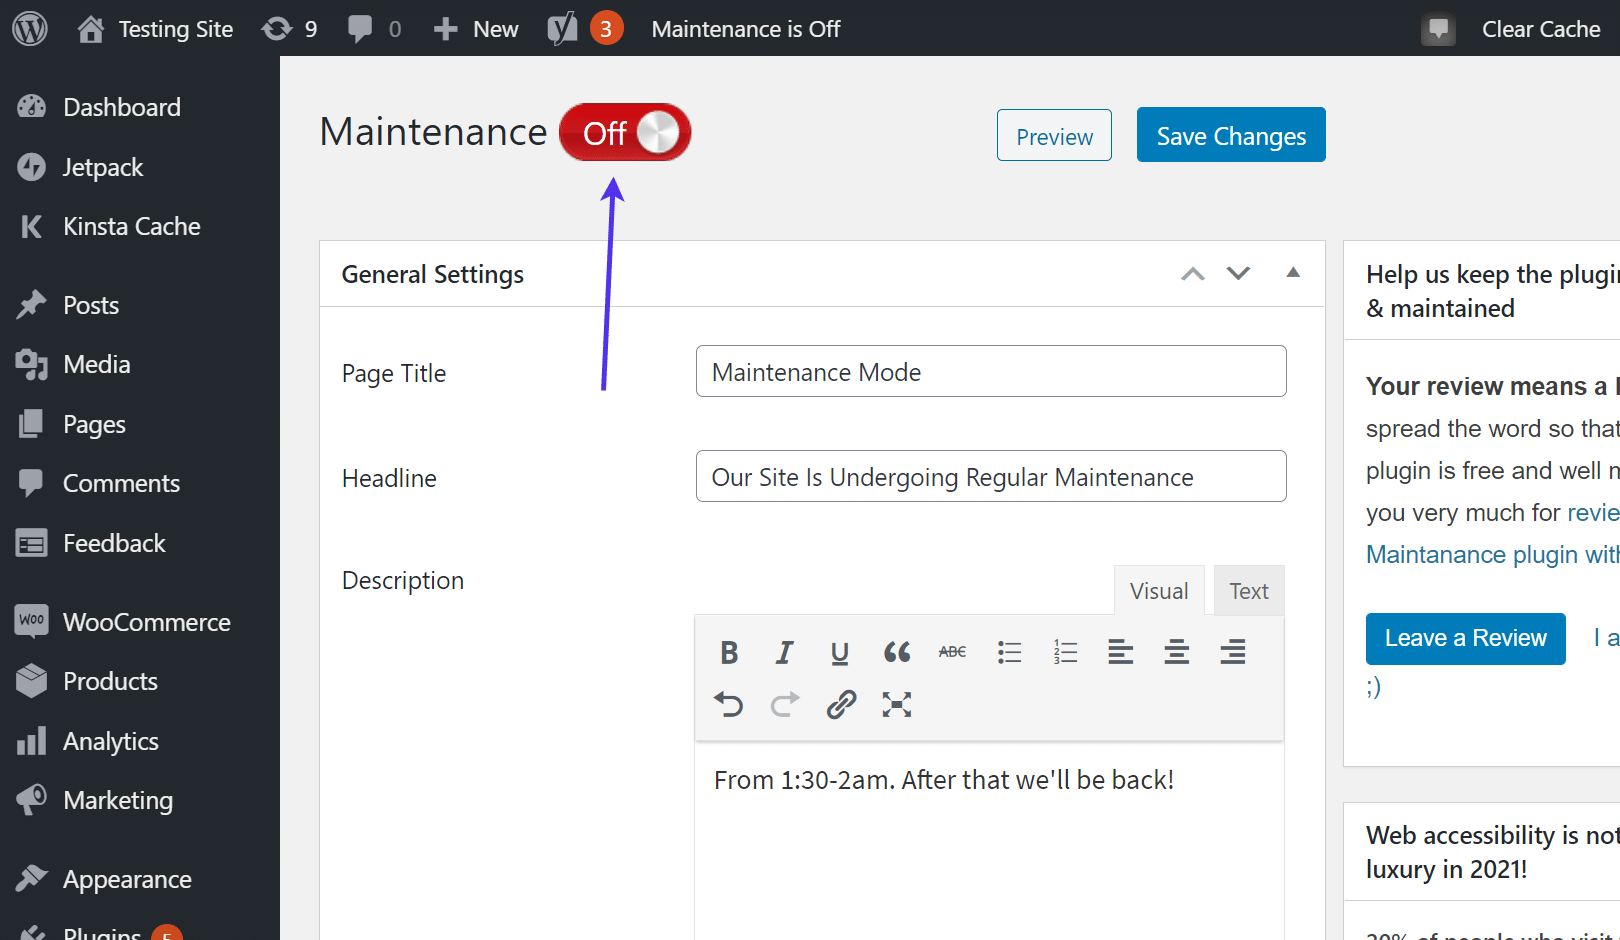 Setting the maintenance page On or Off